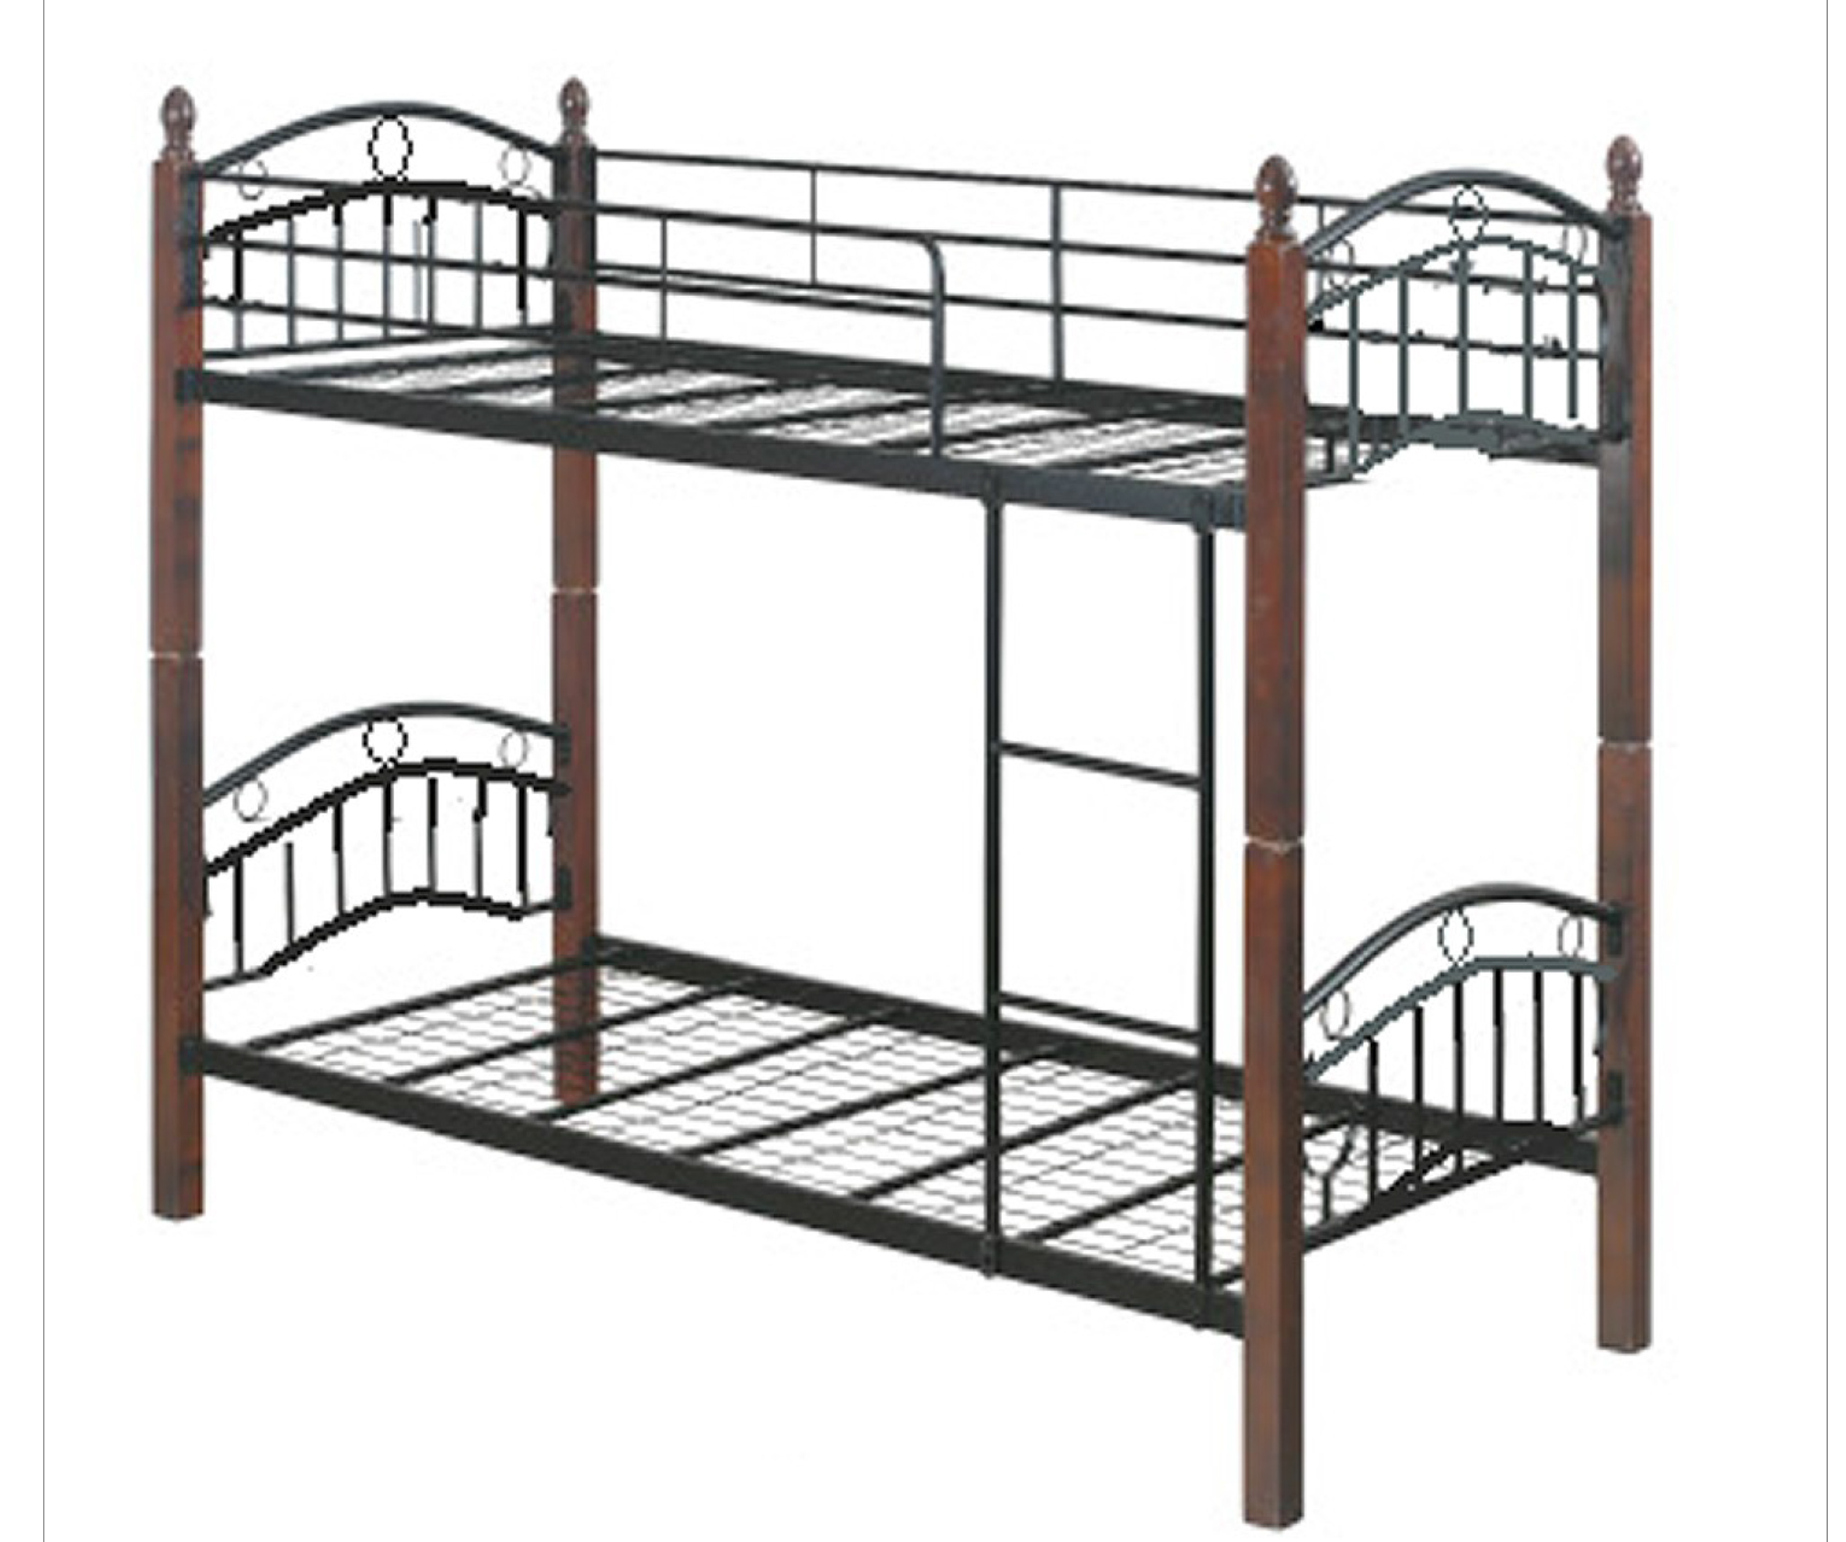 ... Popular Posts Double Deck Bed Double Deck Bed Design Bed Designs Cool